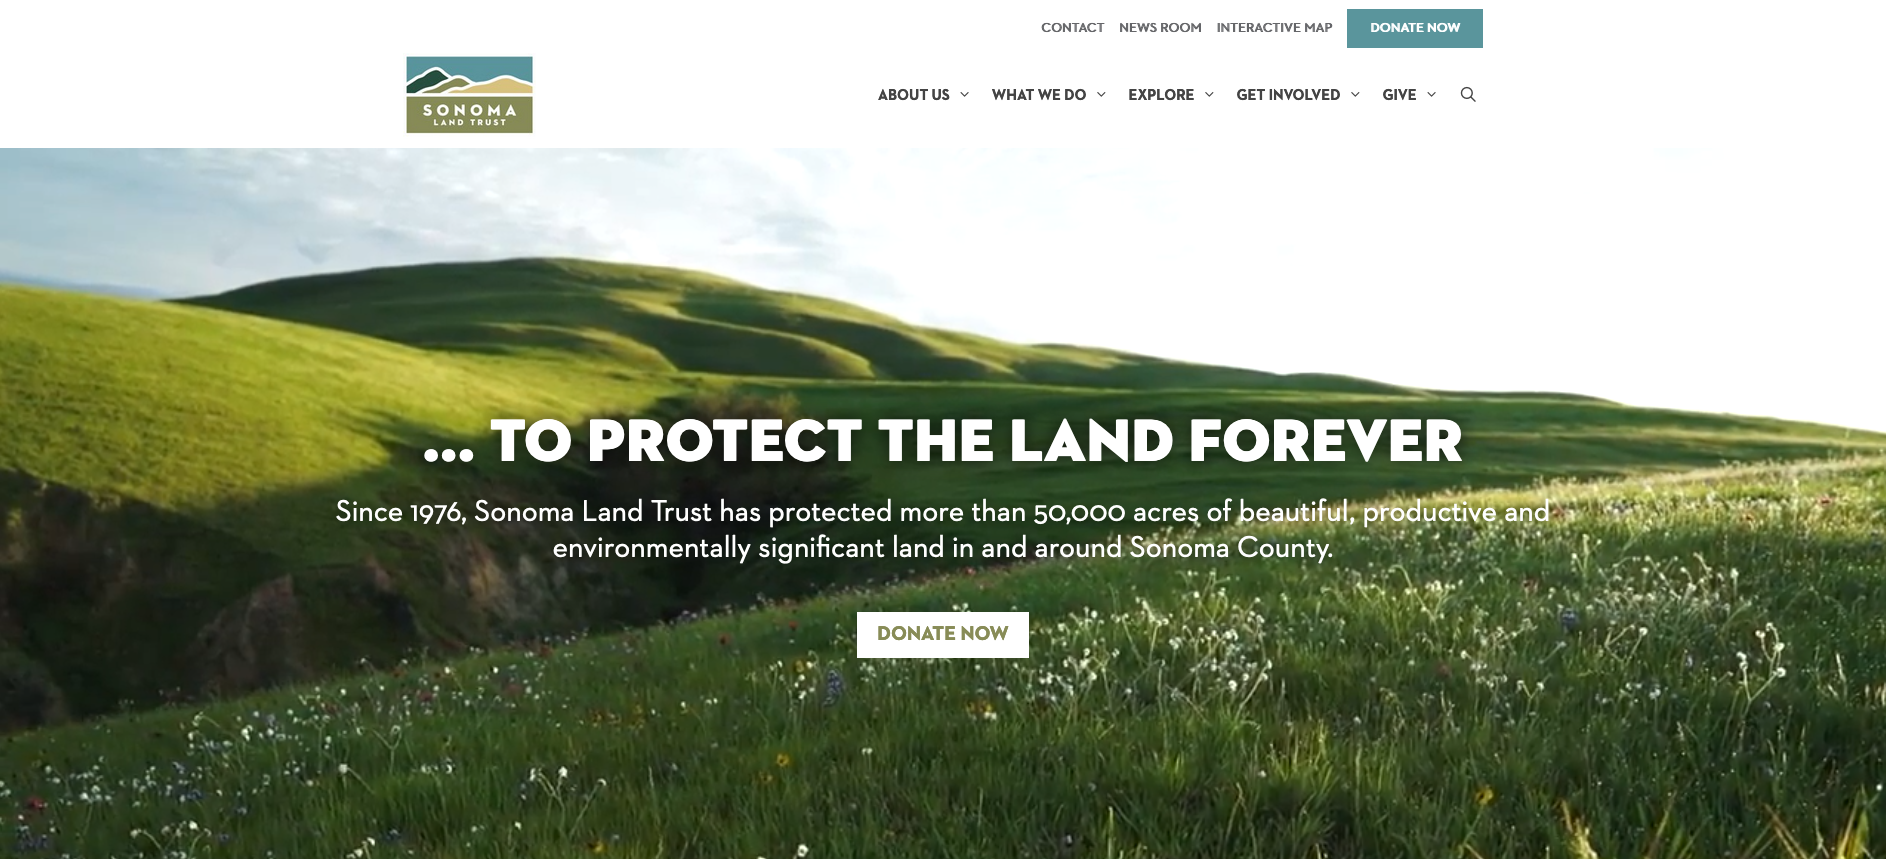 Sonoma Land Trust Home Page